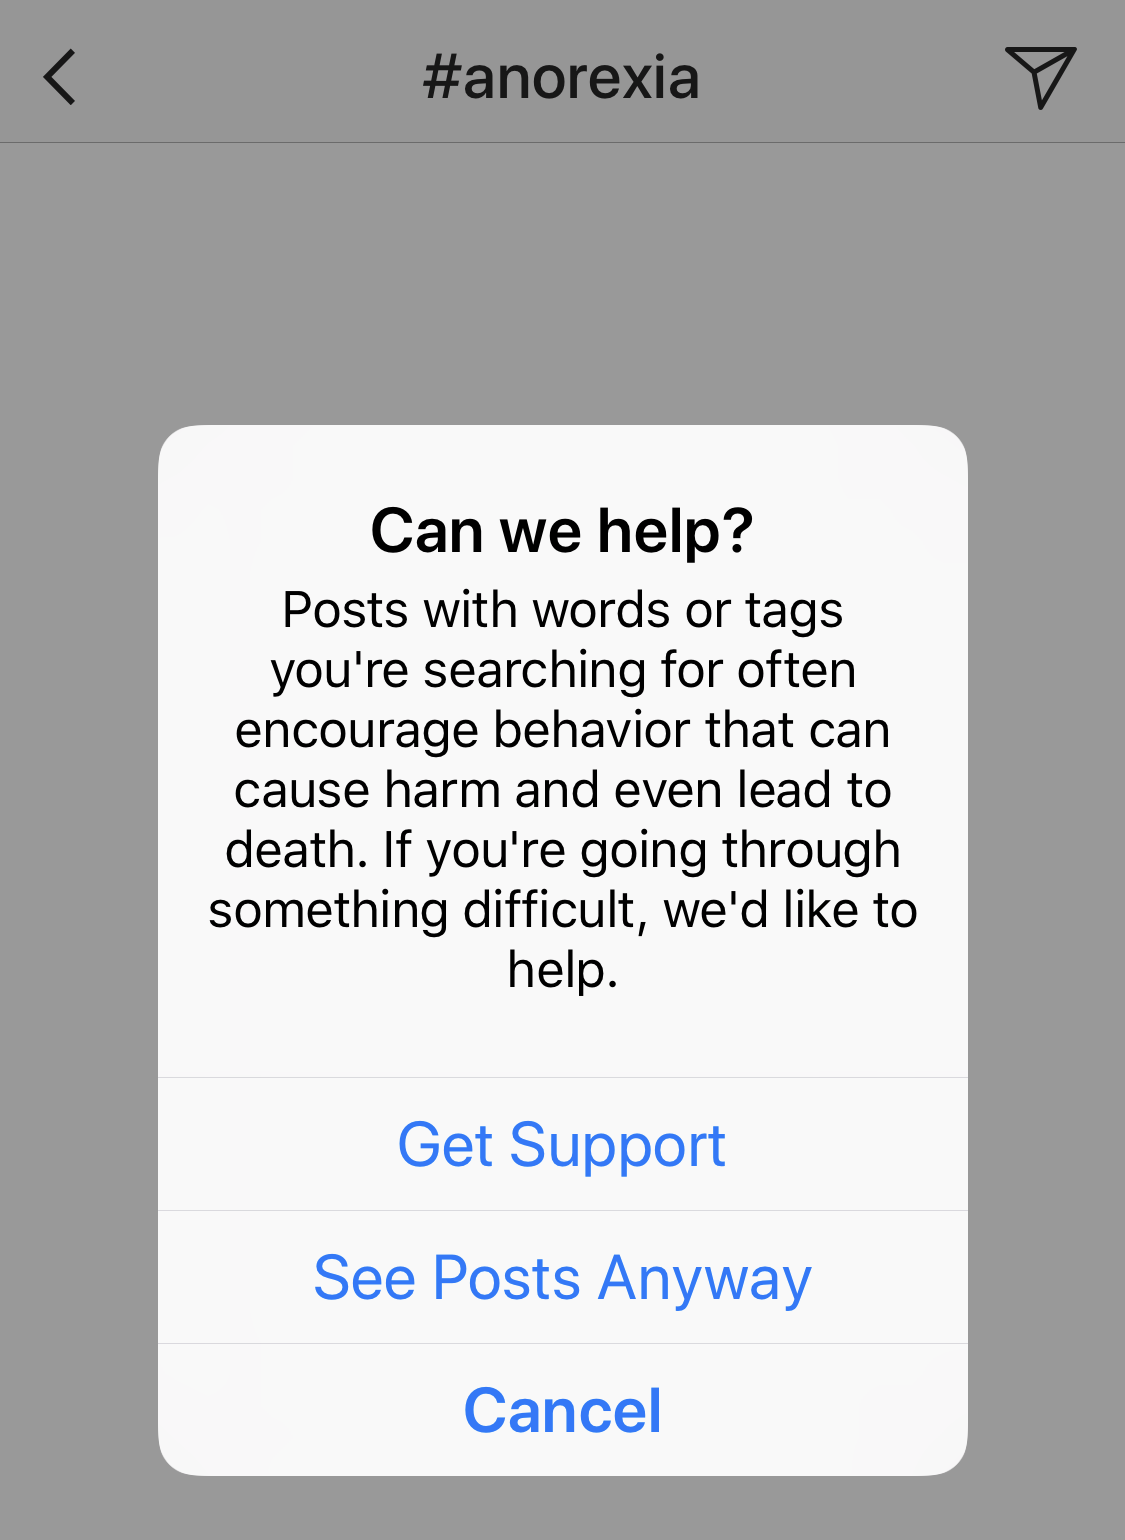 Instagram uses a pop-up with a warning and link to support resources if you search for tags related to eating disorders or self-harm.